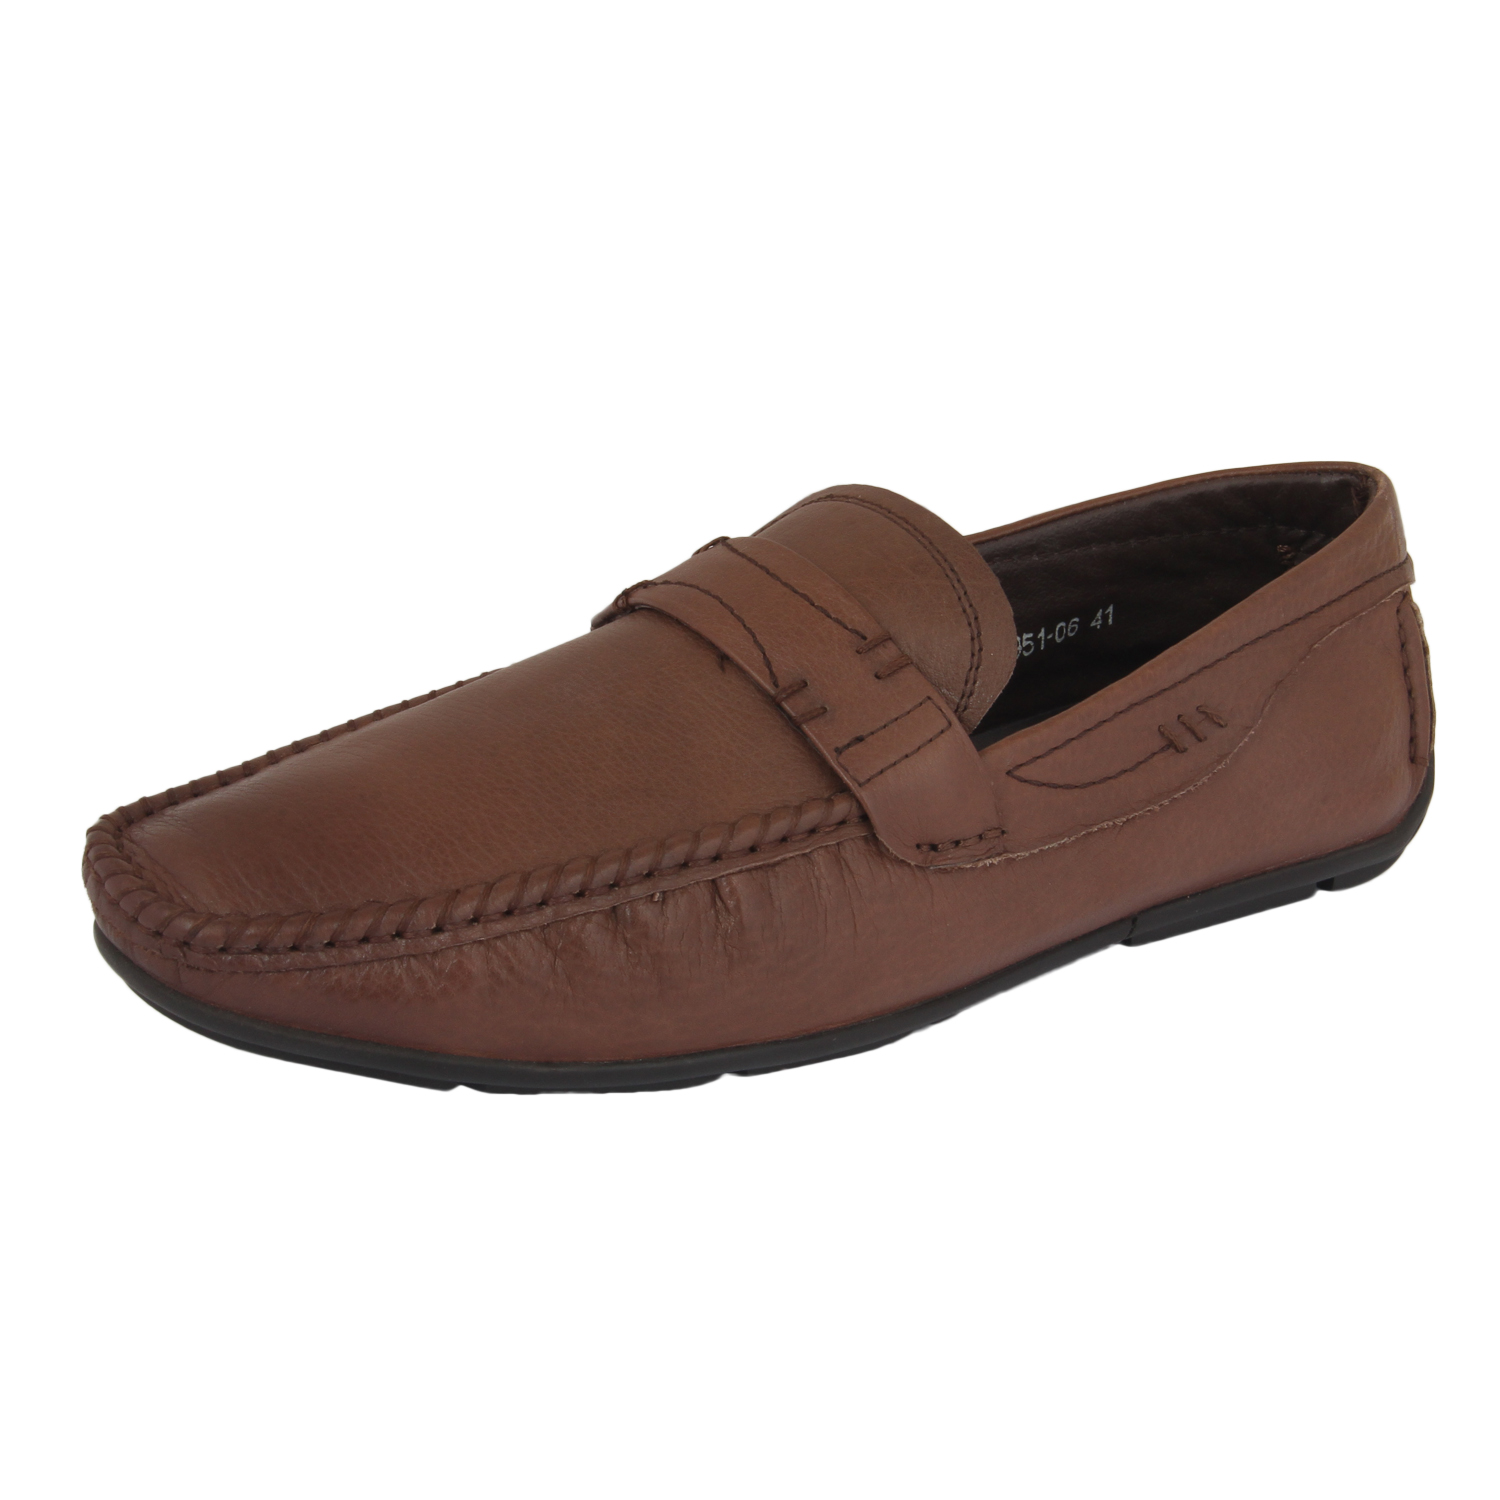 Brown Slip-on Loafer Shoes